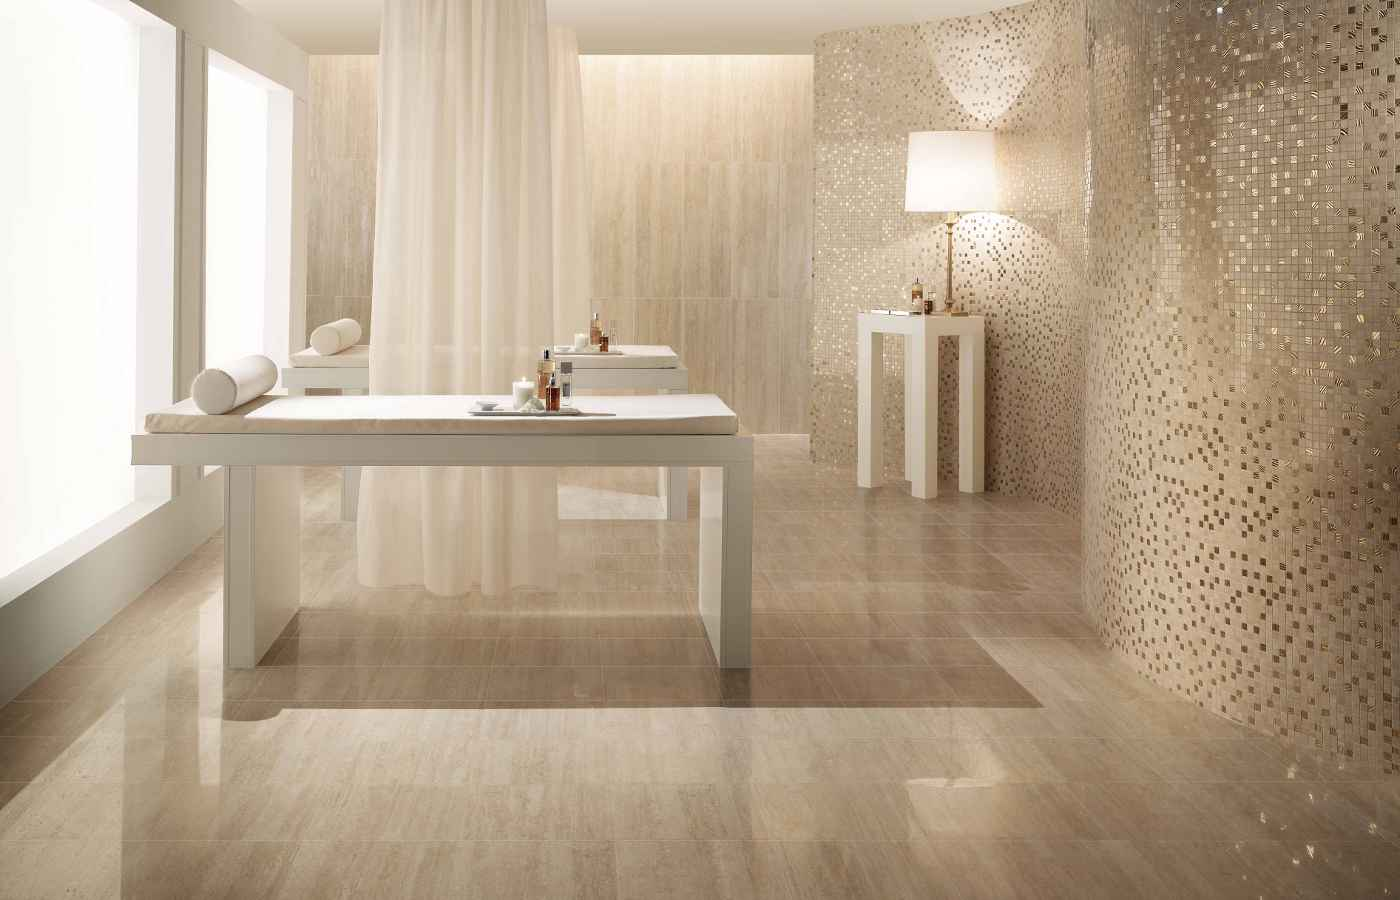 Porcelain tile flooring benefits for Bathroom porcelain tile designs